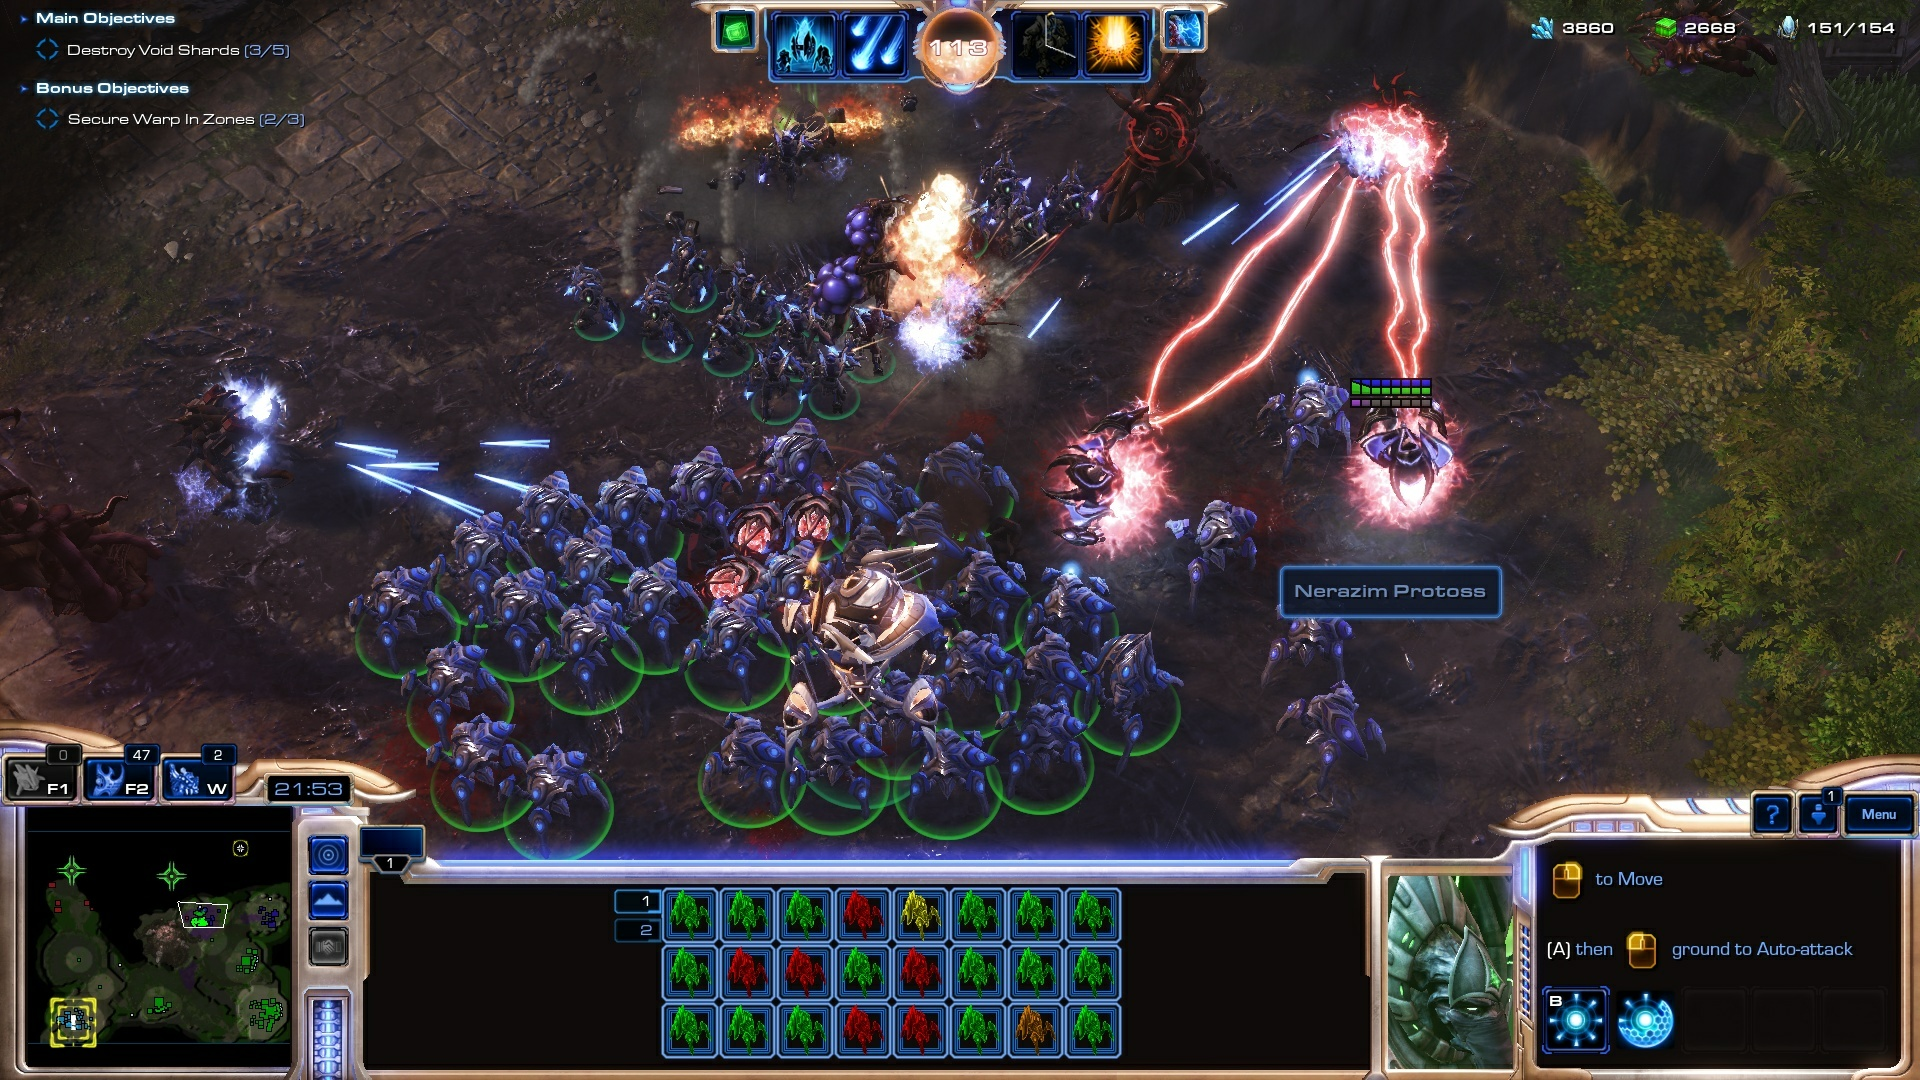 Google DeepMind could invent the next generation of AI by playing Starcraft 2